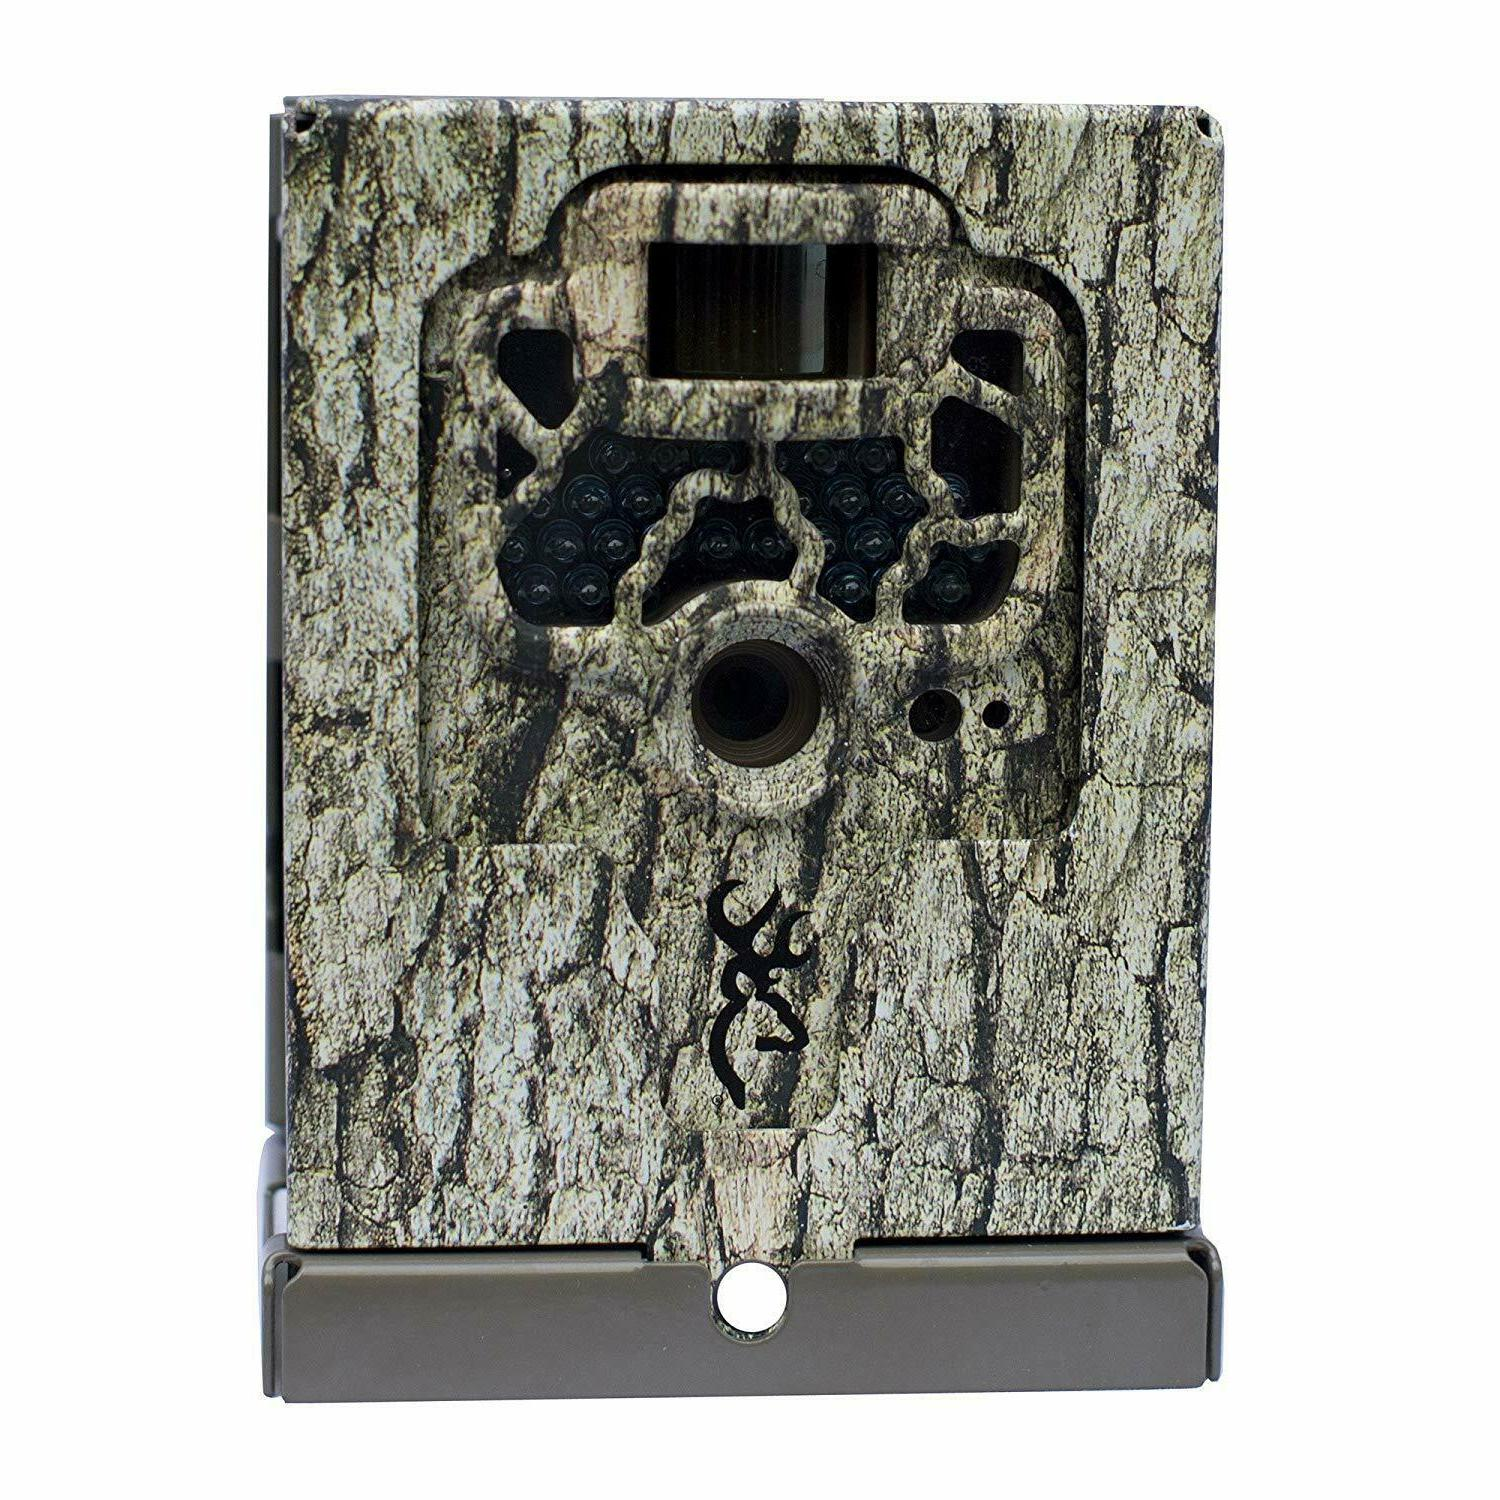 Browning Strike Force Pro HD Video Security